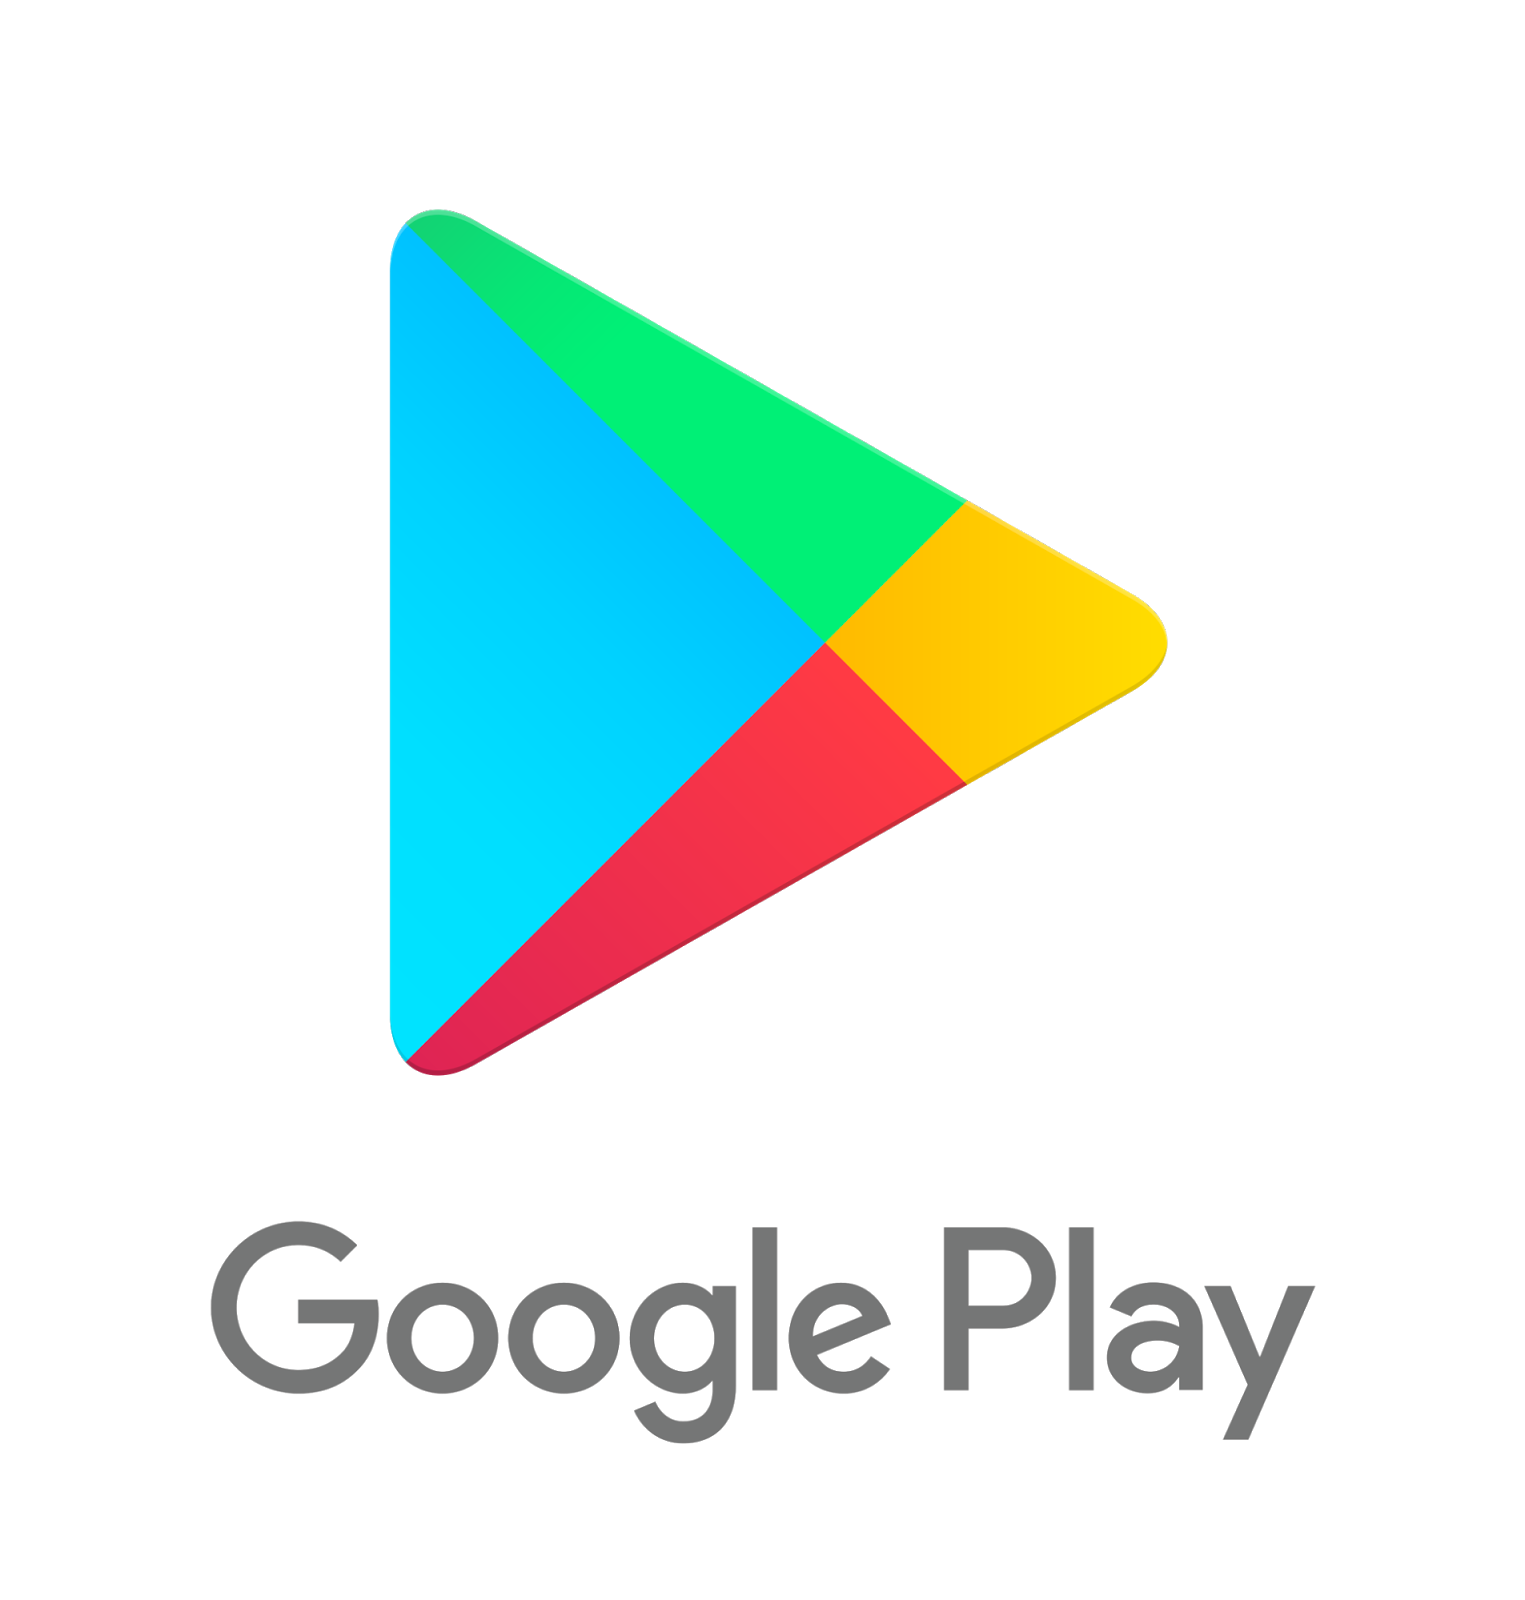 google play store logo png Google play apps, Google play